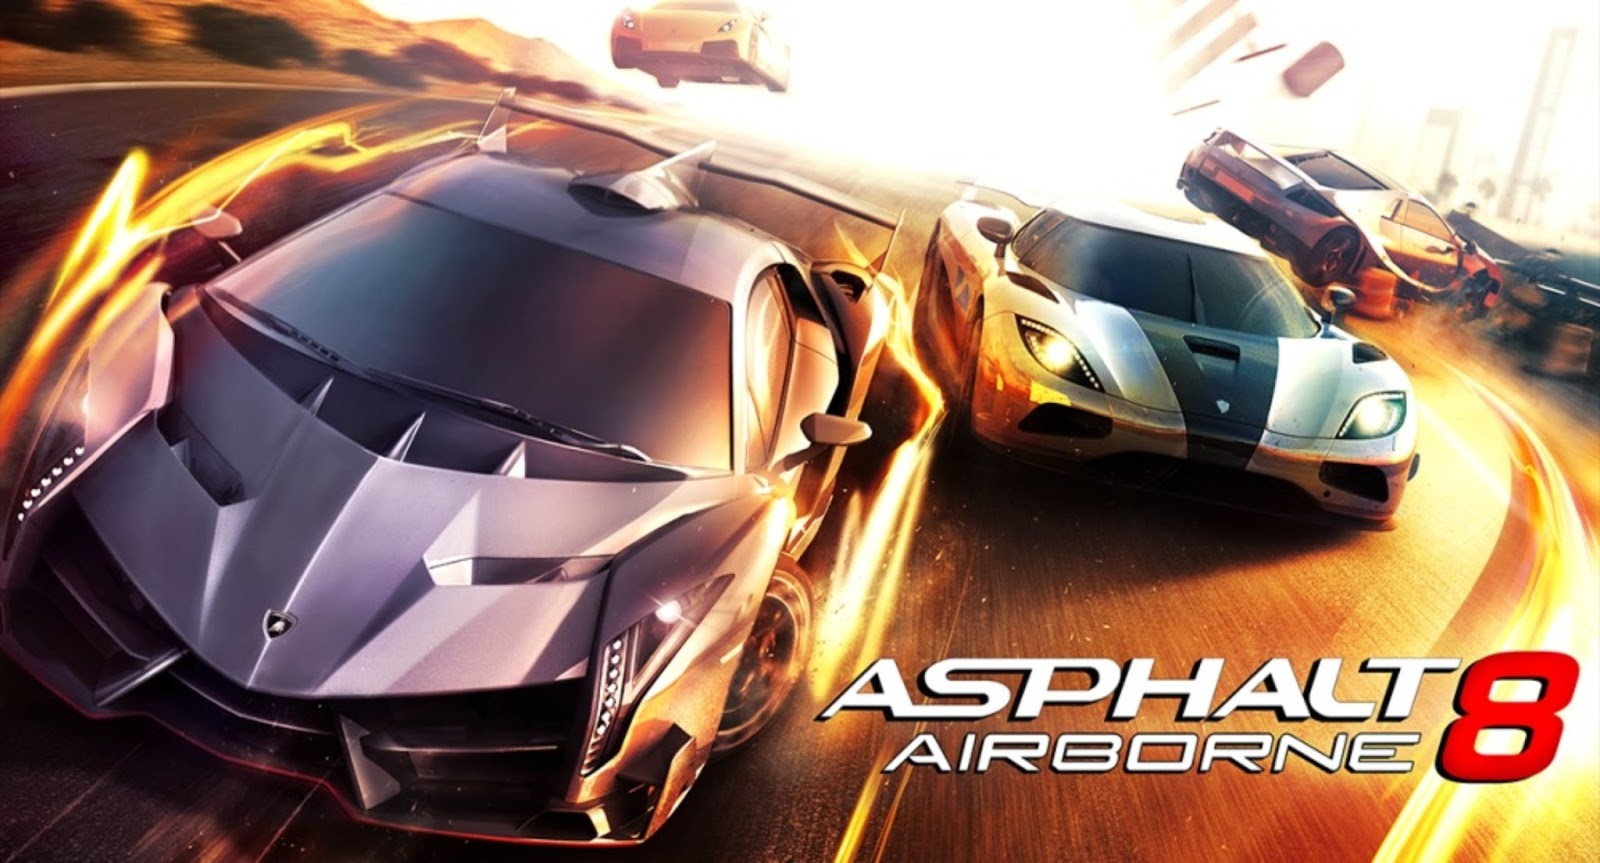 Asphalt 8: Airborne v1.0.0 APK + SD Data | Android Games Download